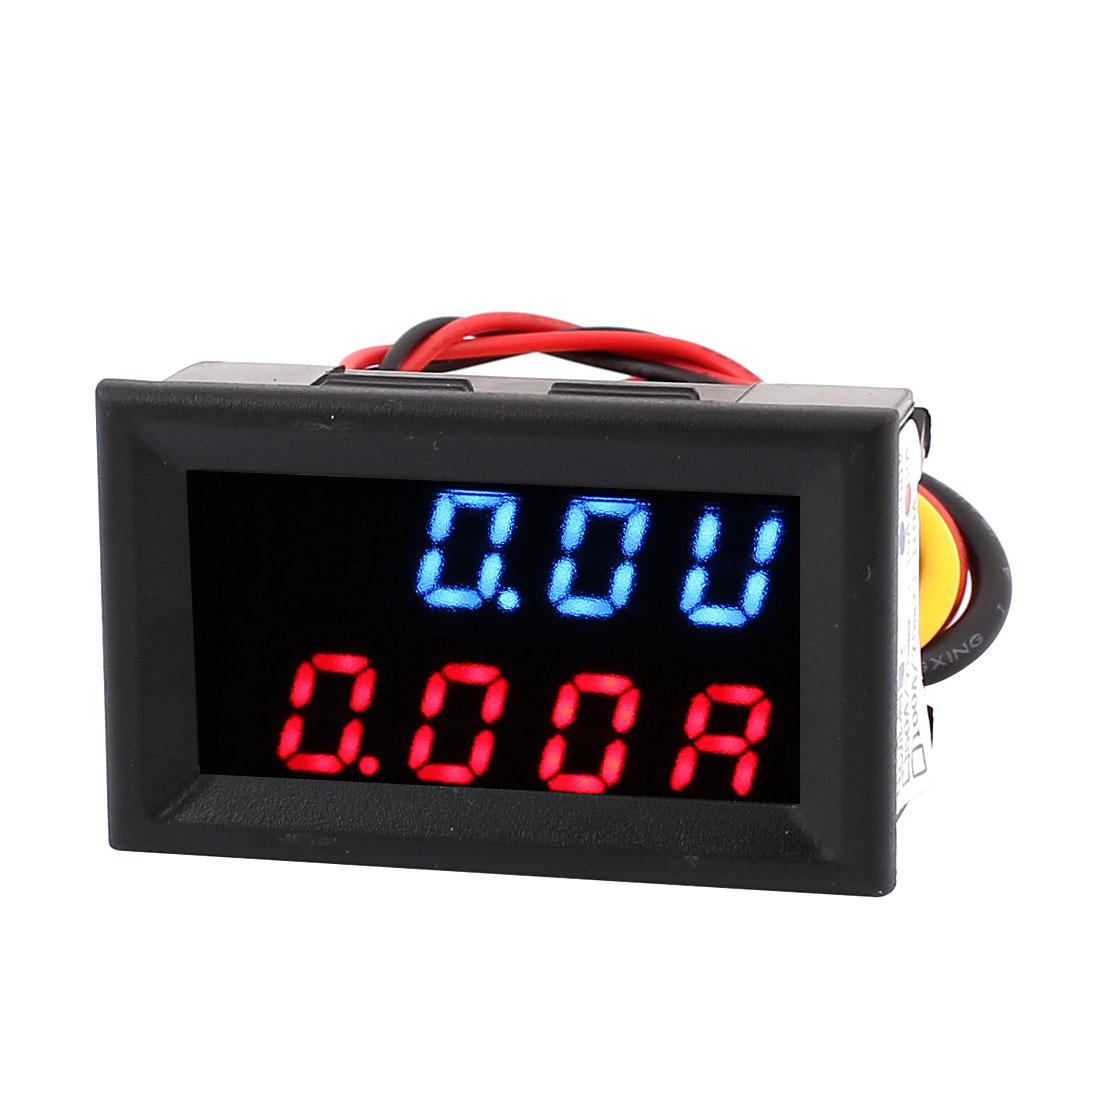 DC 0-200V 0-2A Dual LED Digital Power Battery Test Monitor Voltmeter Ammter